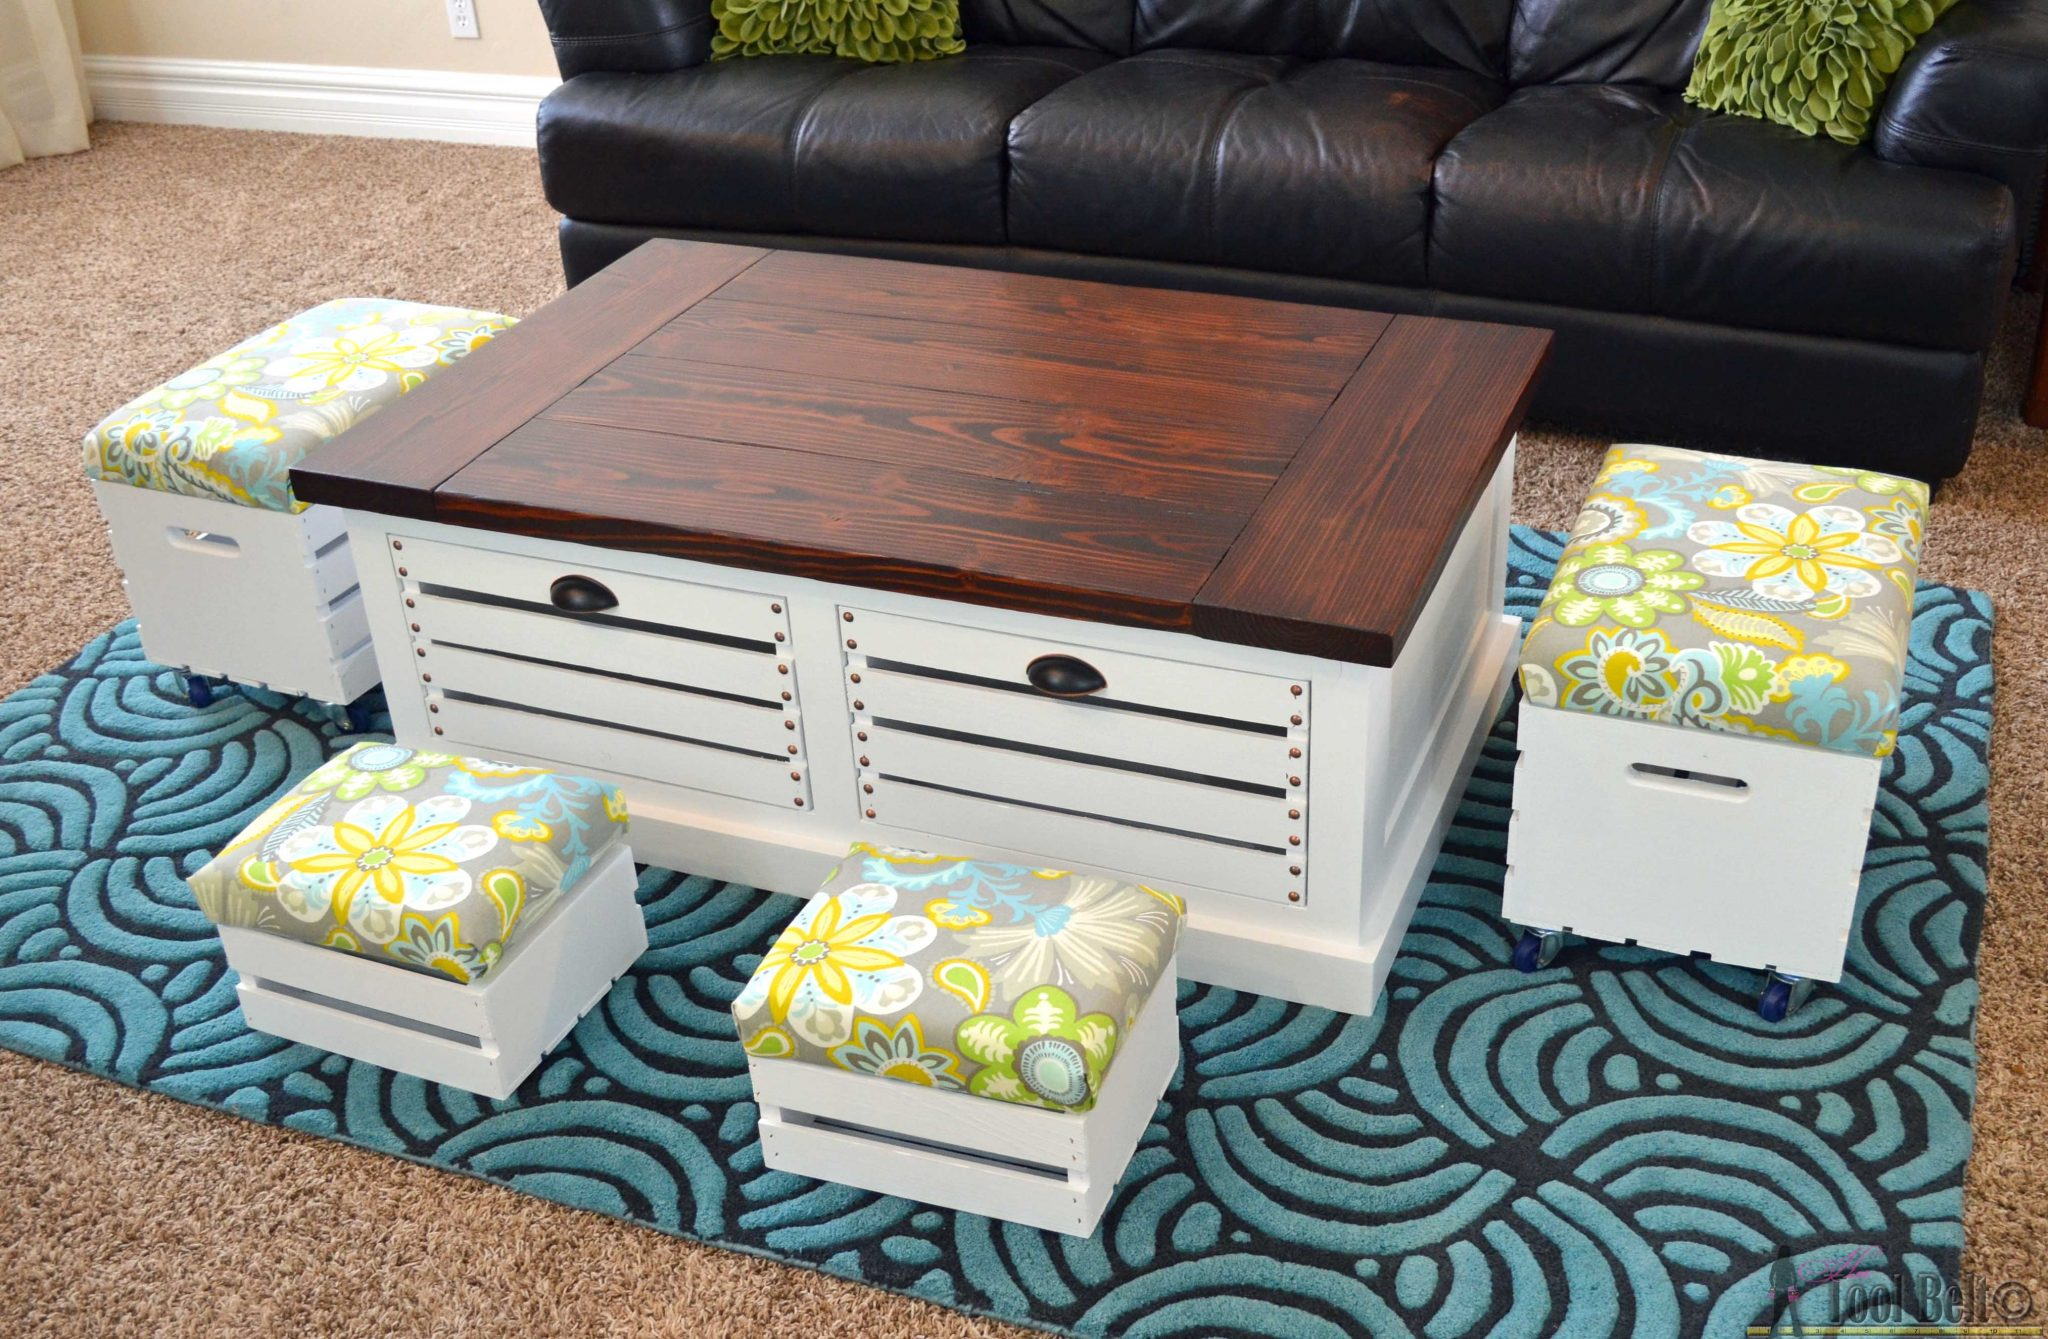 Add Storage To Your Living Areas By Building A Stylish And Unique Crate Storage Coffee Table